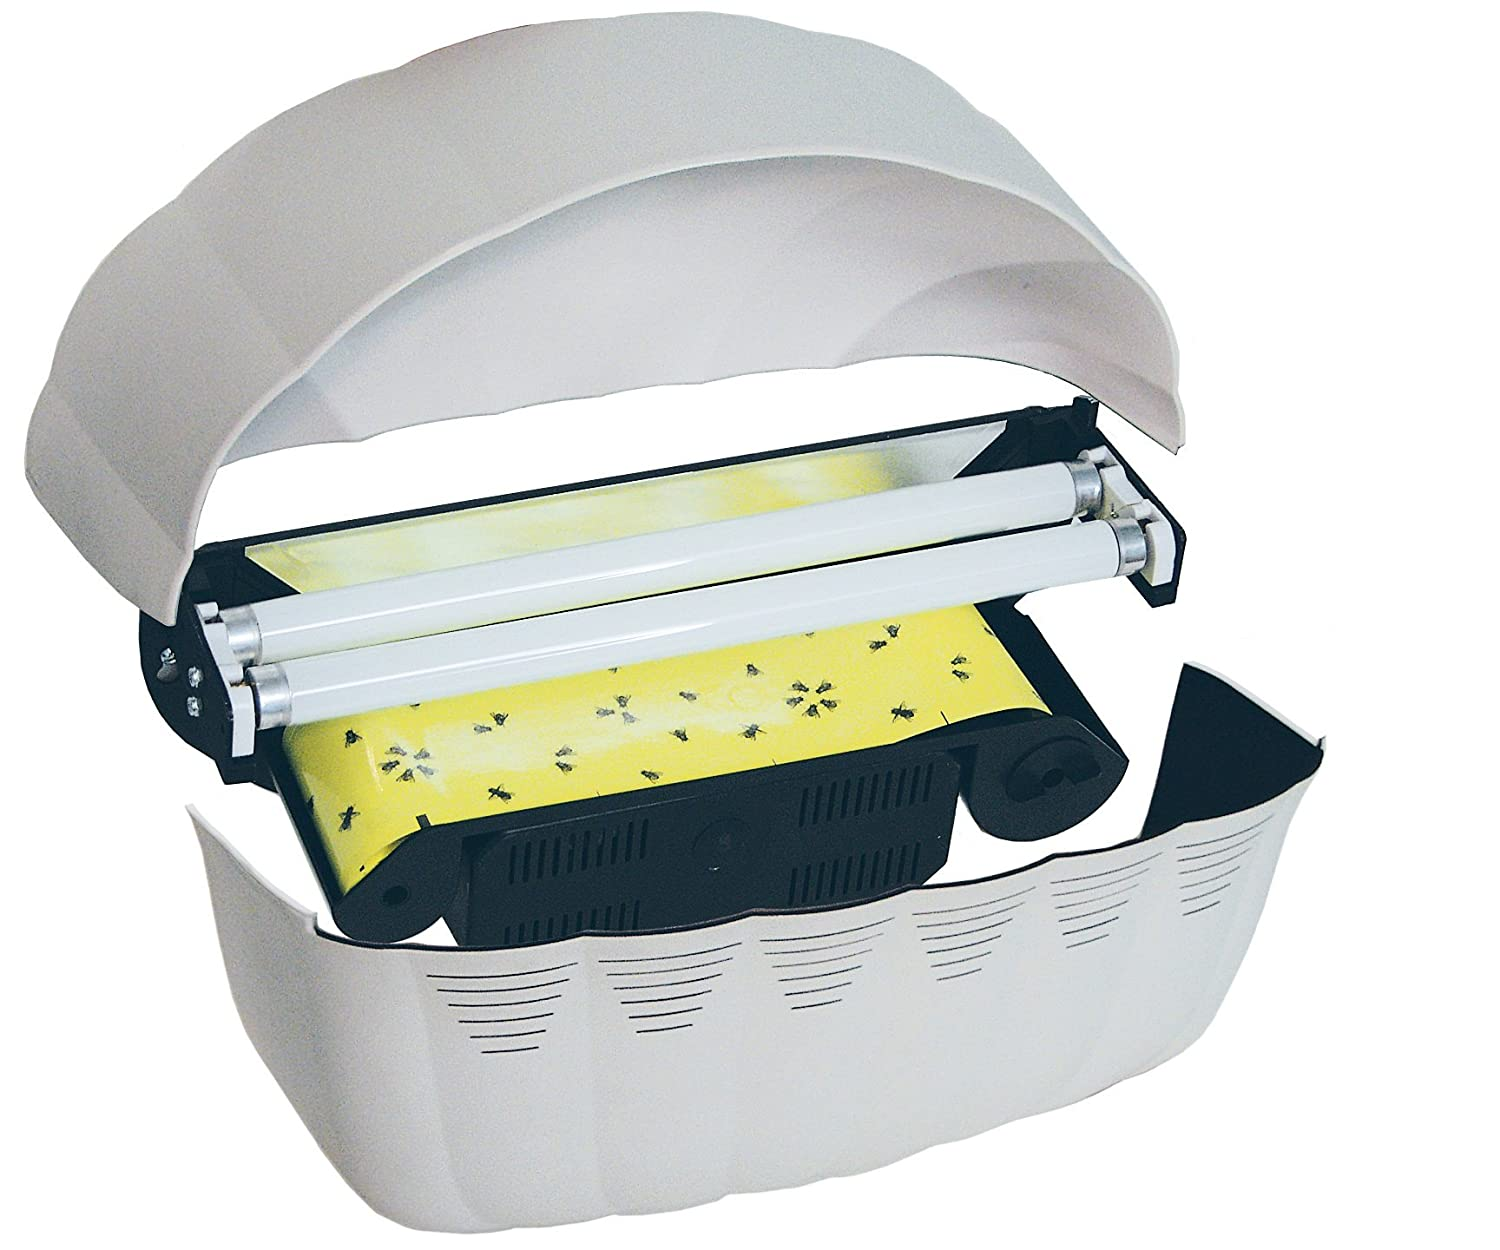 Paraclipse 250602 Insect Inn Ultra II Commercial Fly Control System 2,000 Fly Capacity by Paraclipse